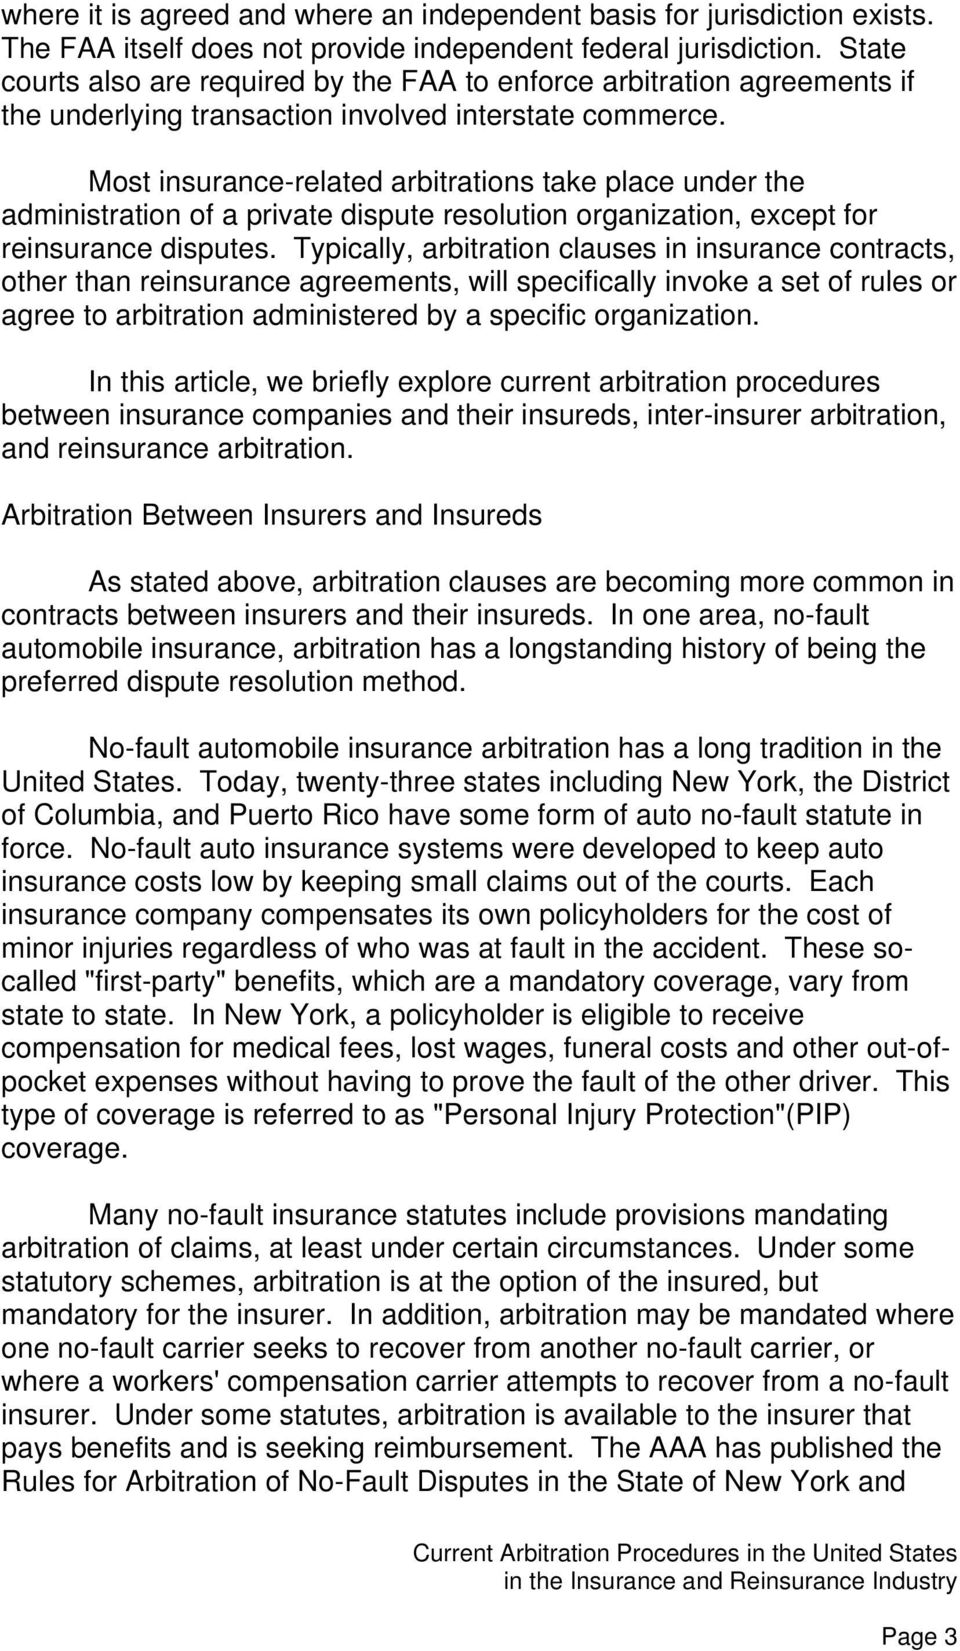 Most insurance-related arbitrations take place under the administration of a private dispute resolution organization, except for reinsurance disputes.